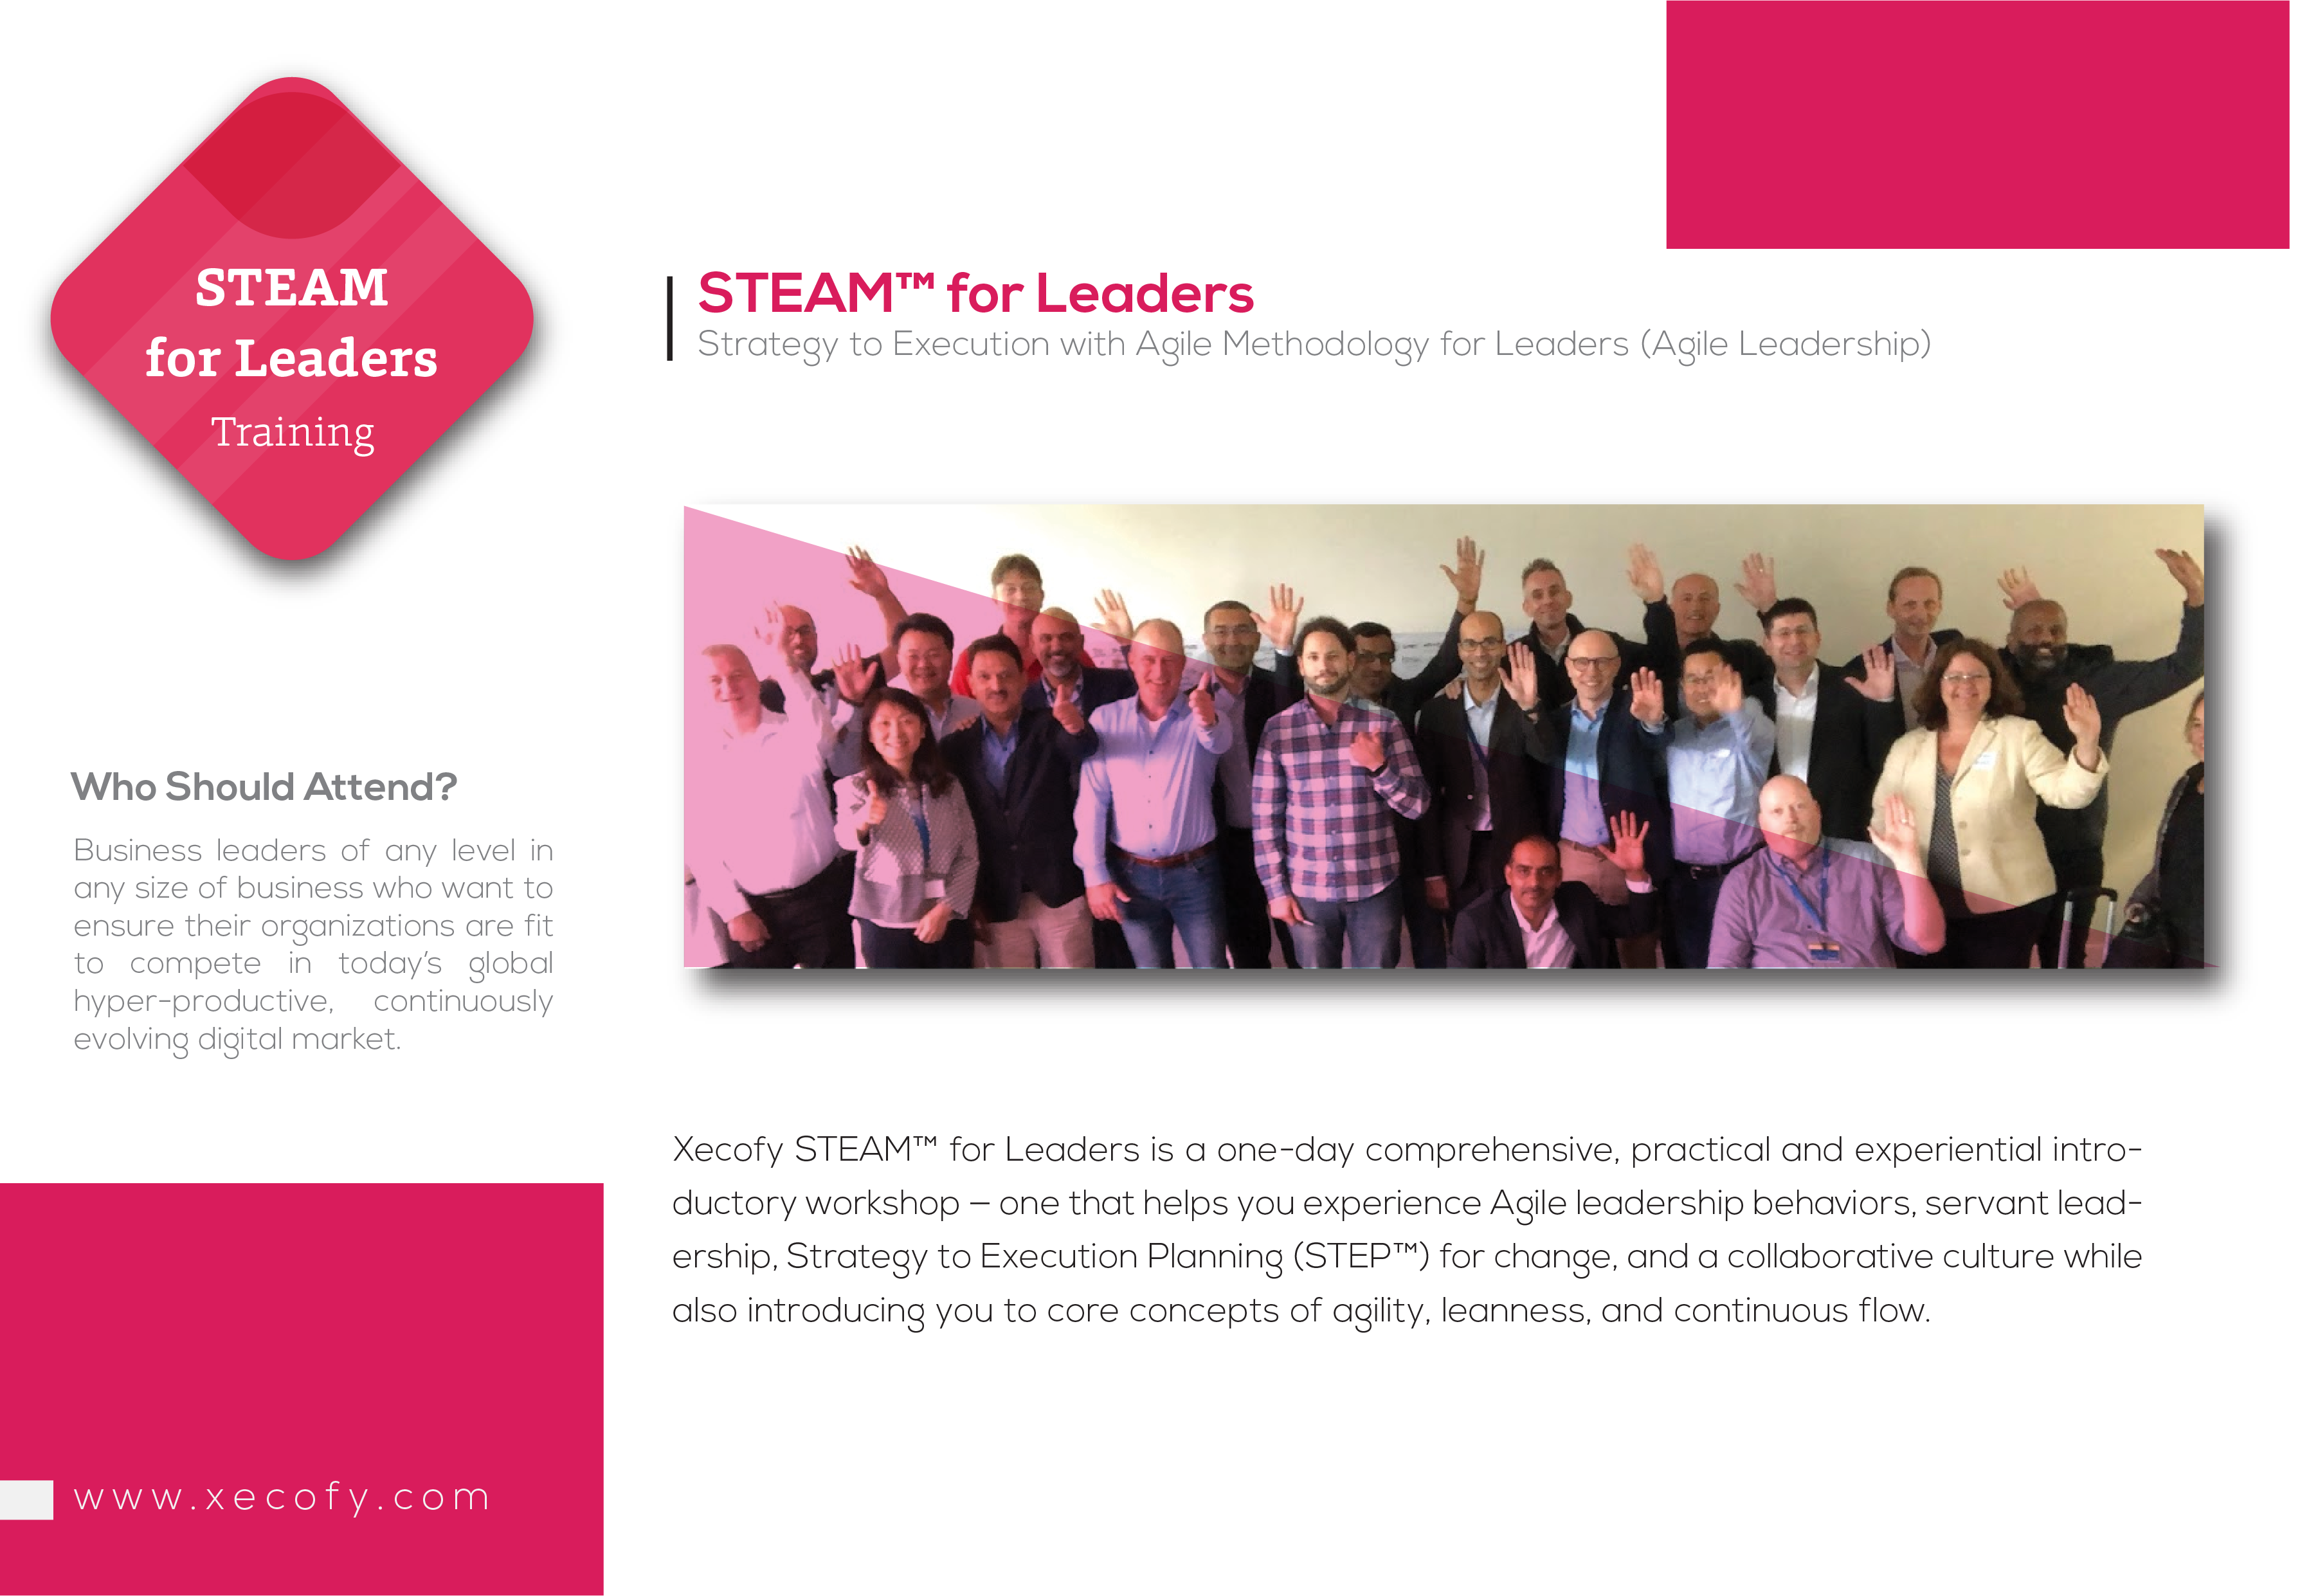 STEAM™ for Leaders (Agile Leadership) – Xecofy